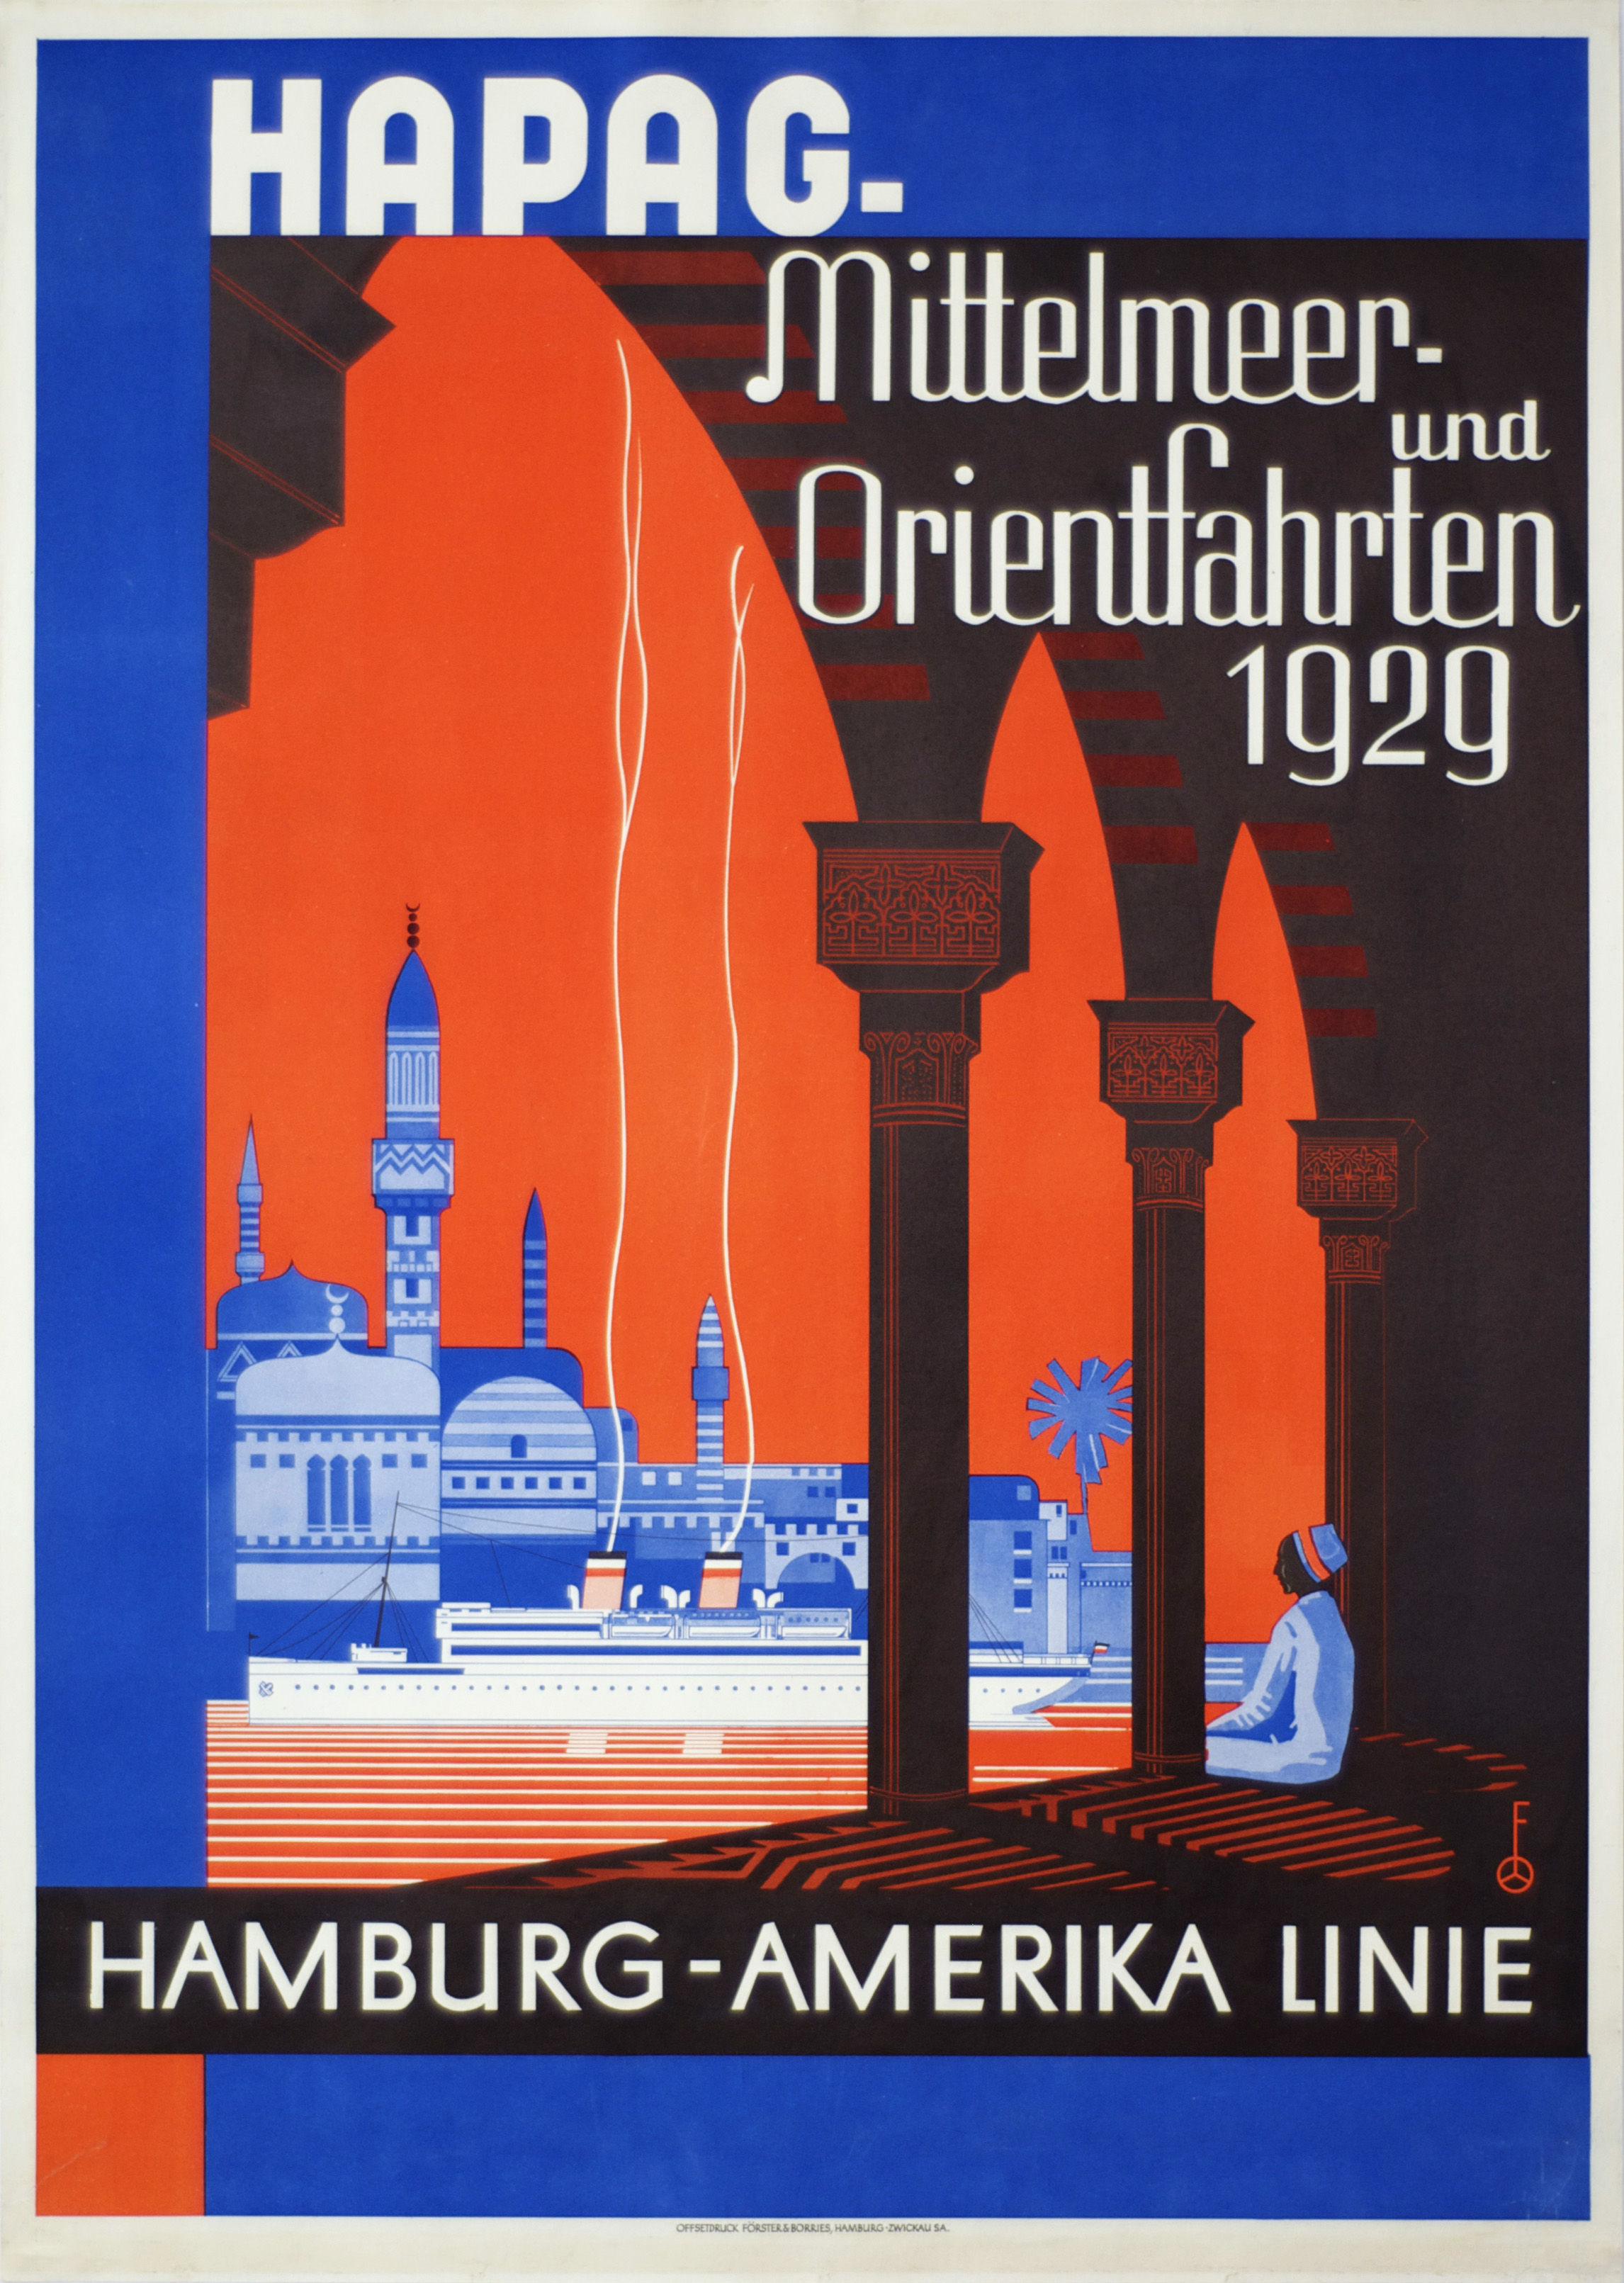 Vintage Travel Posters 1920-1950